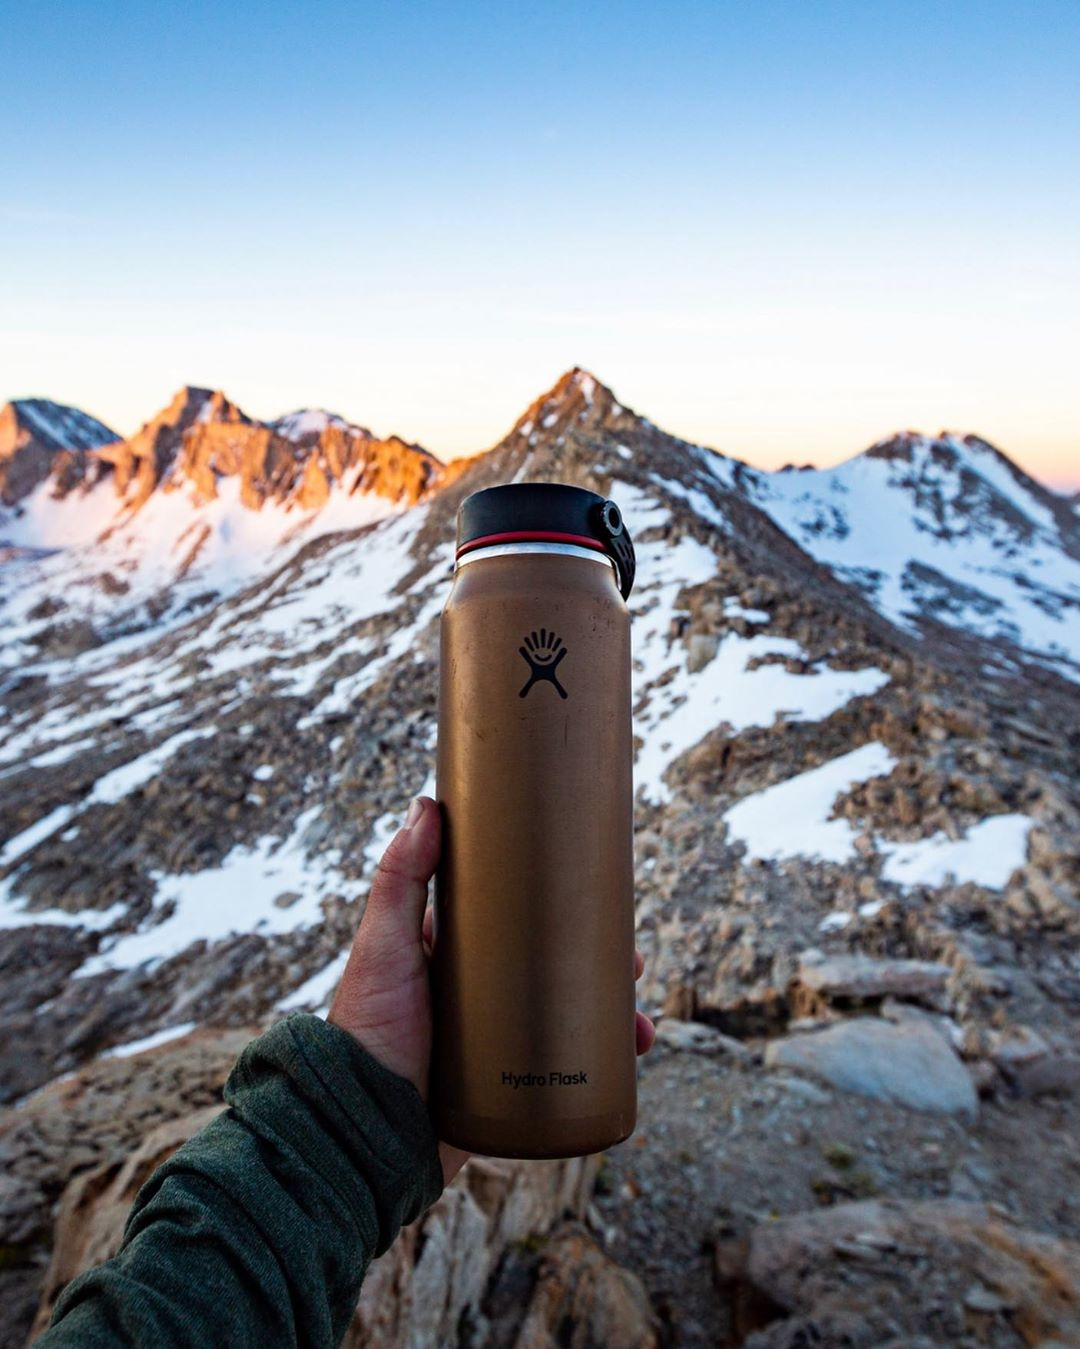 the hydroflask is a reliable and durable bottle that has interchangeable lids to match every need